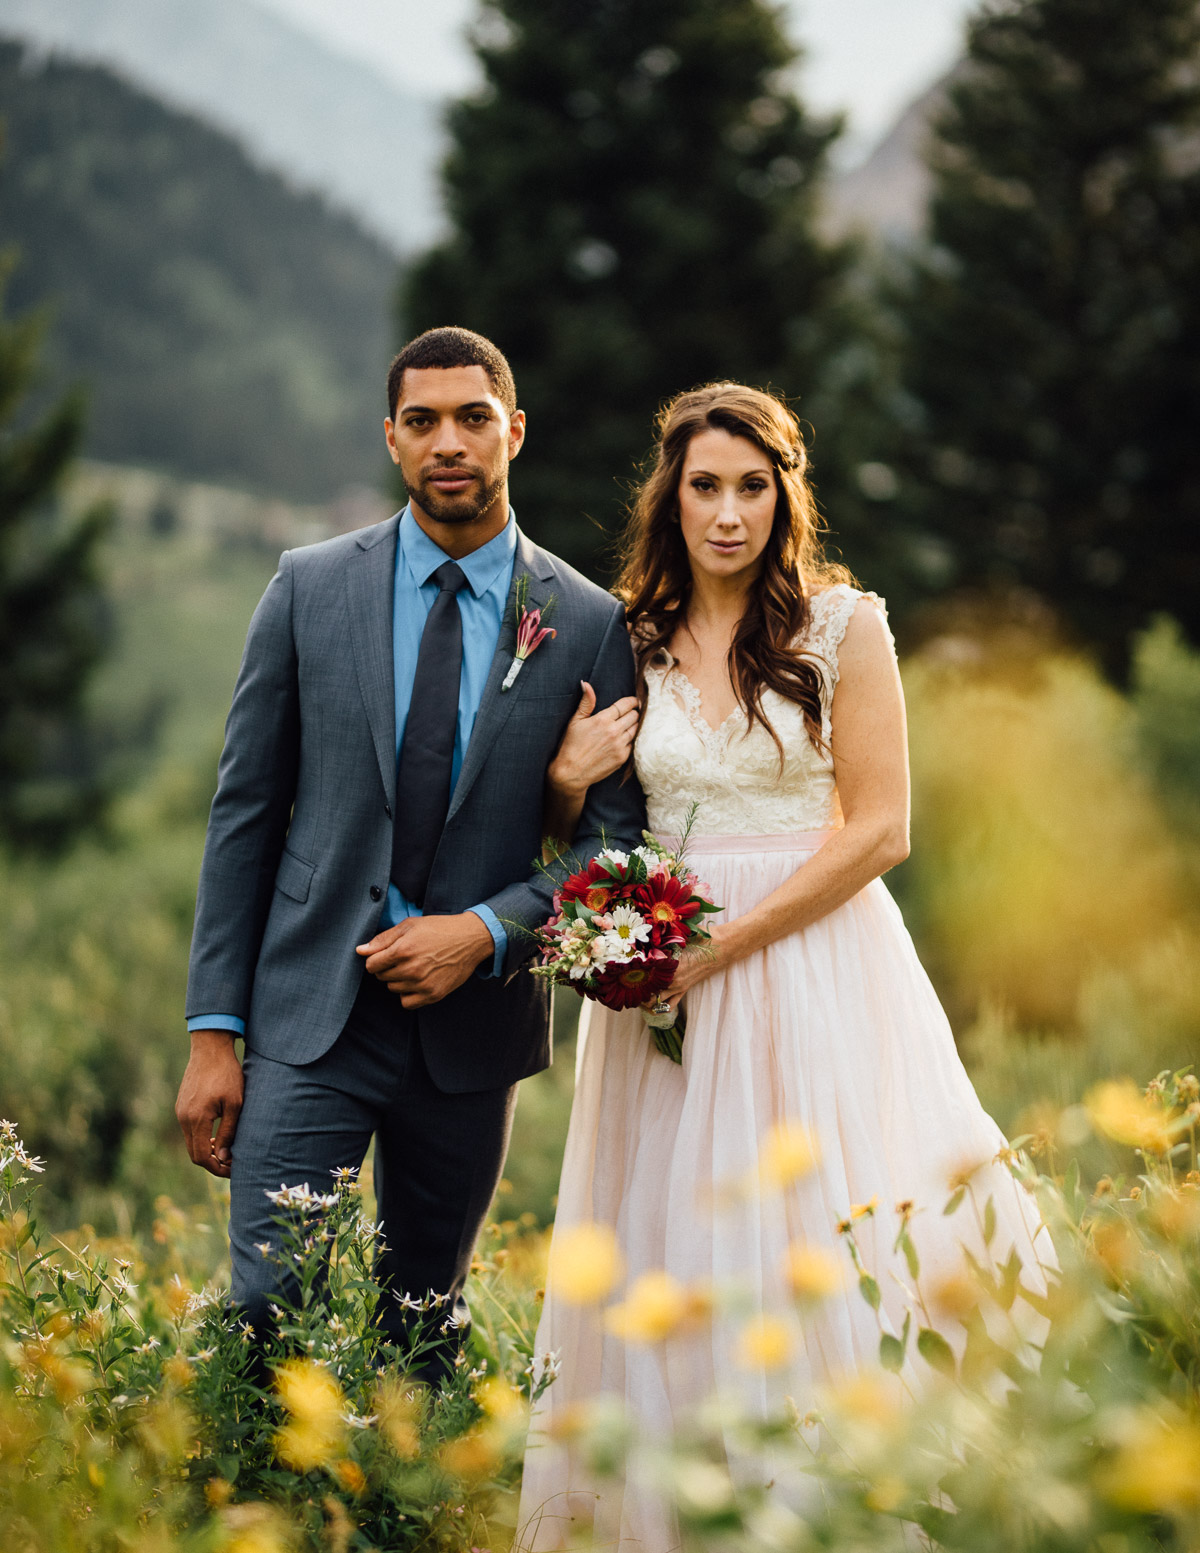 utah-bride-groom Salt Lake City | Mountain Wedding Inspiration